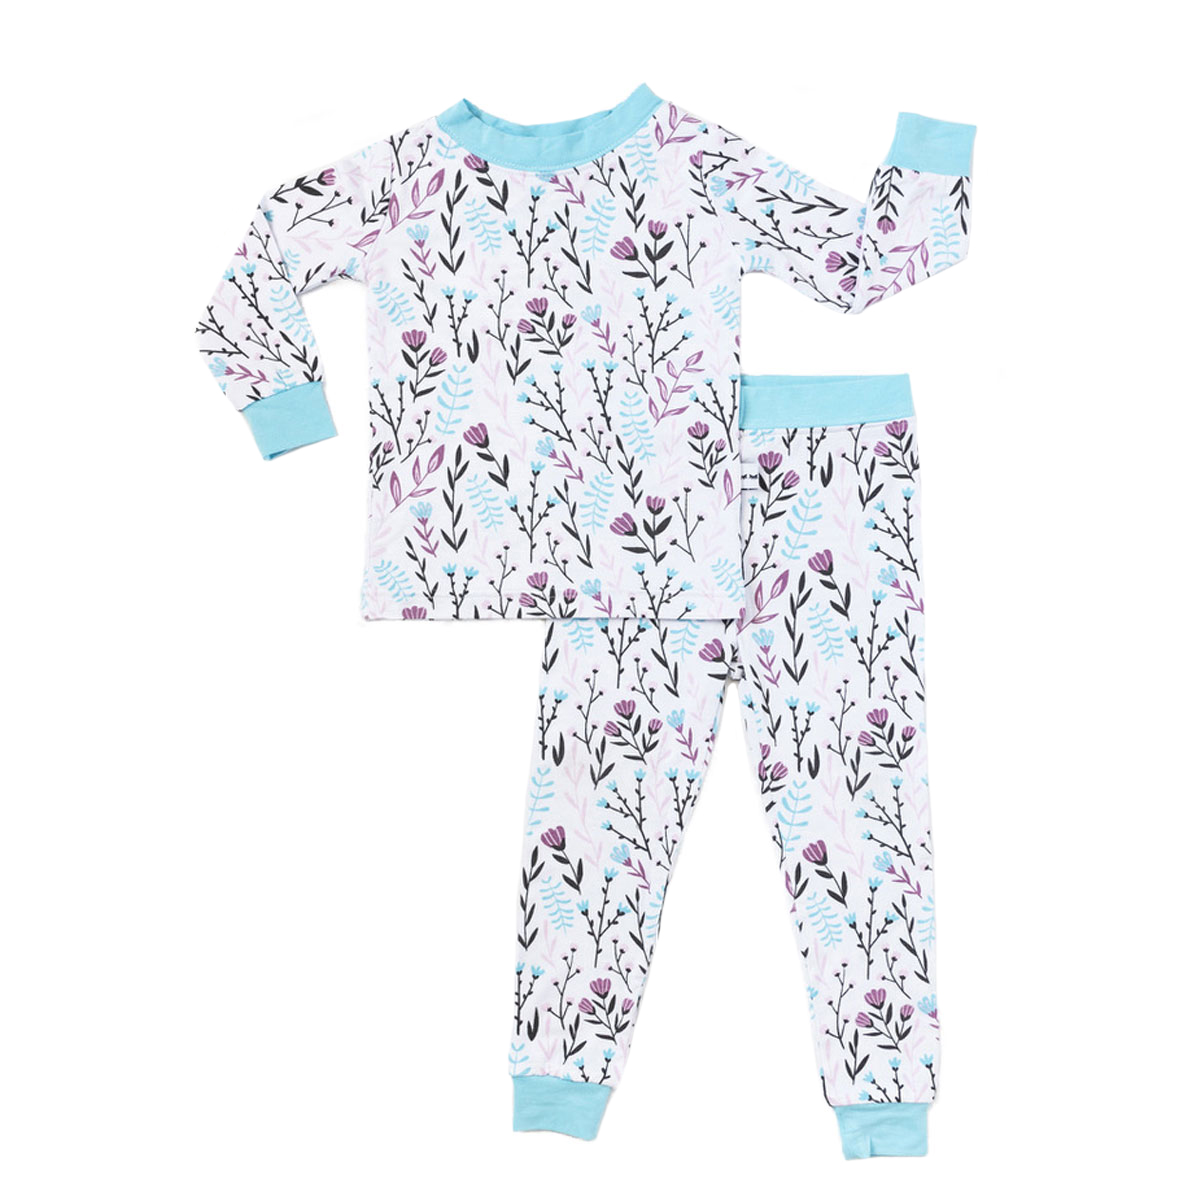 Little Sleepies Bamboo PJ Set in Wildflower Print